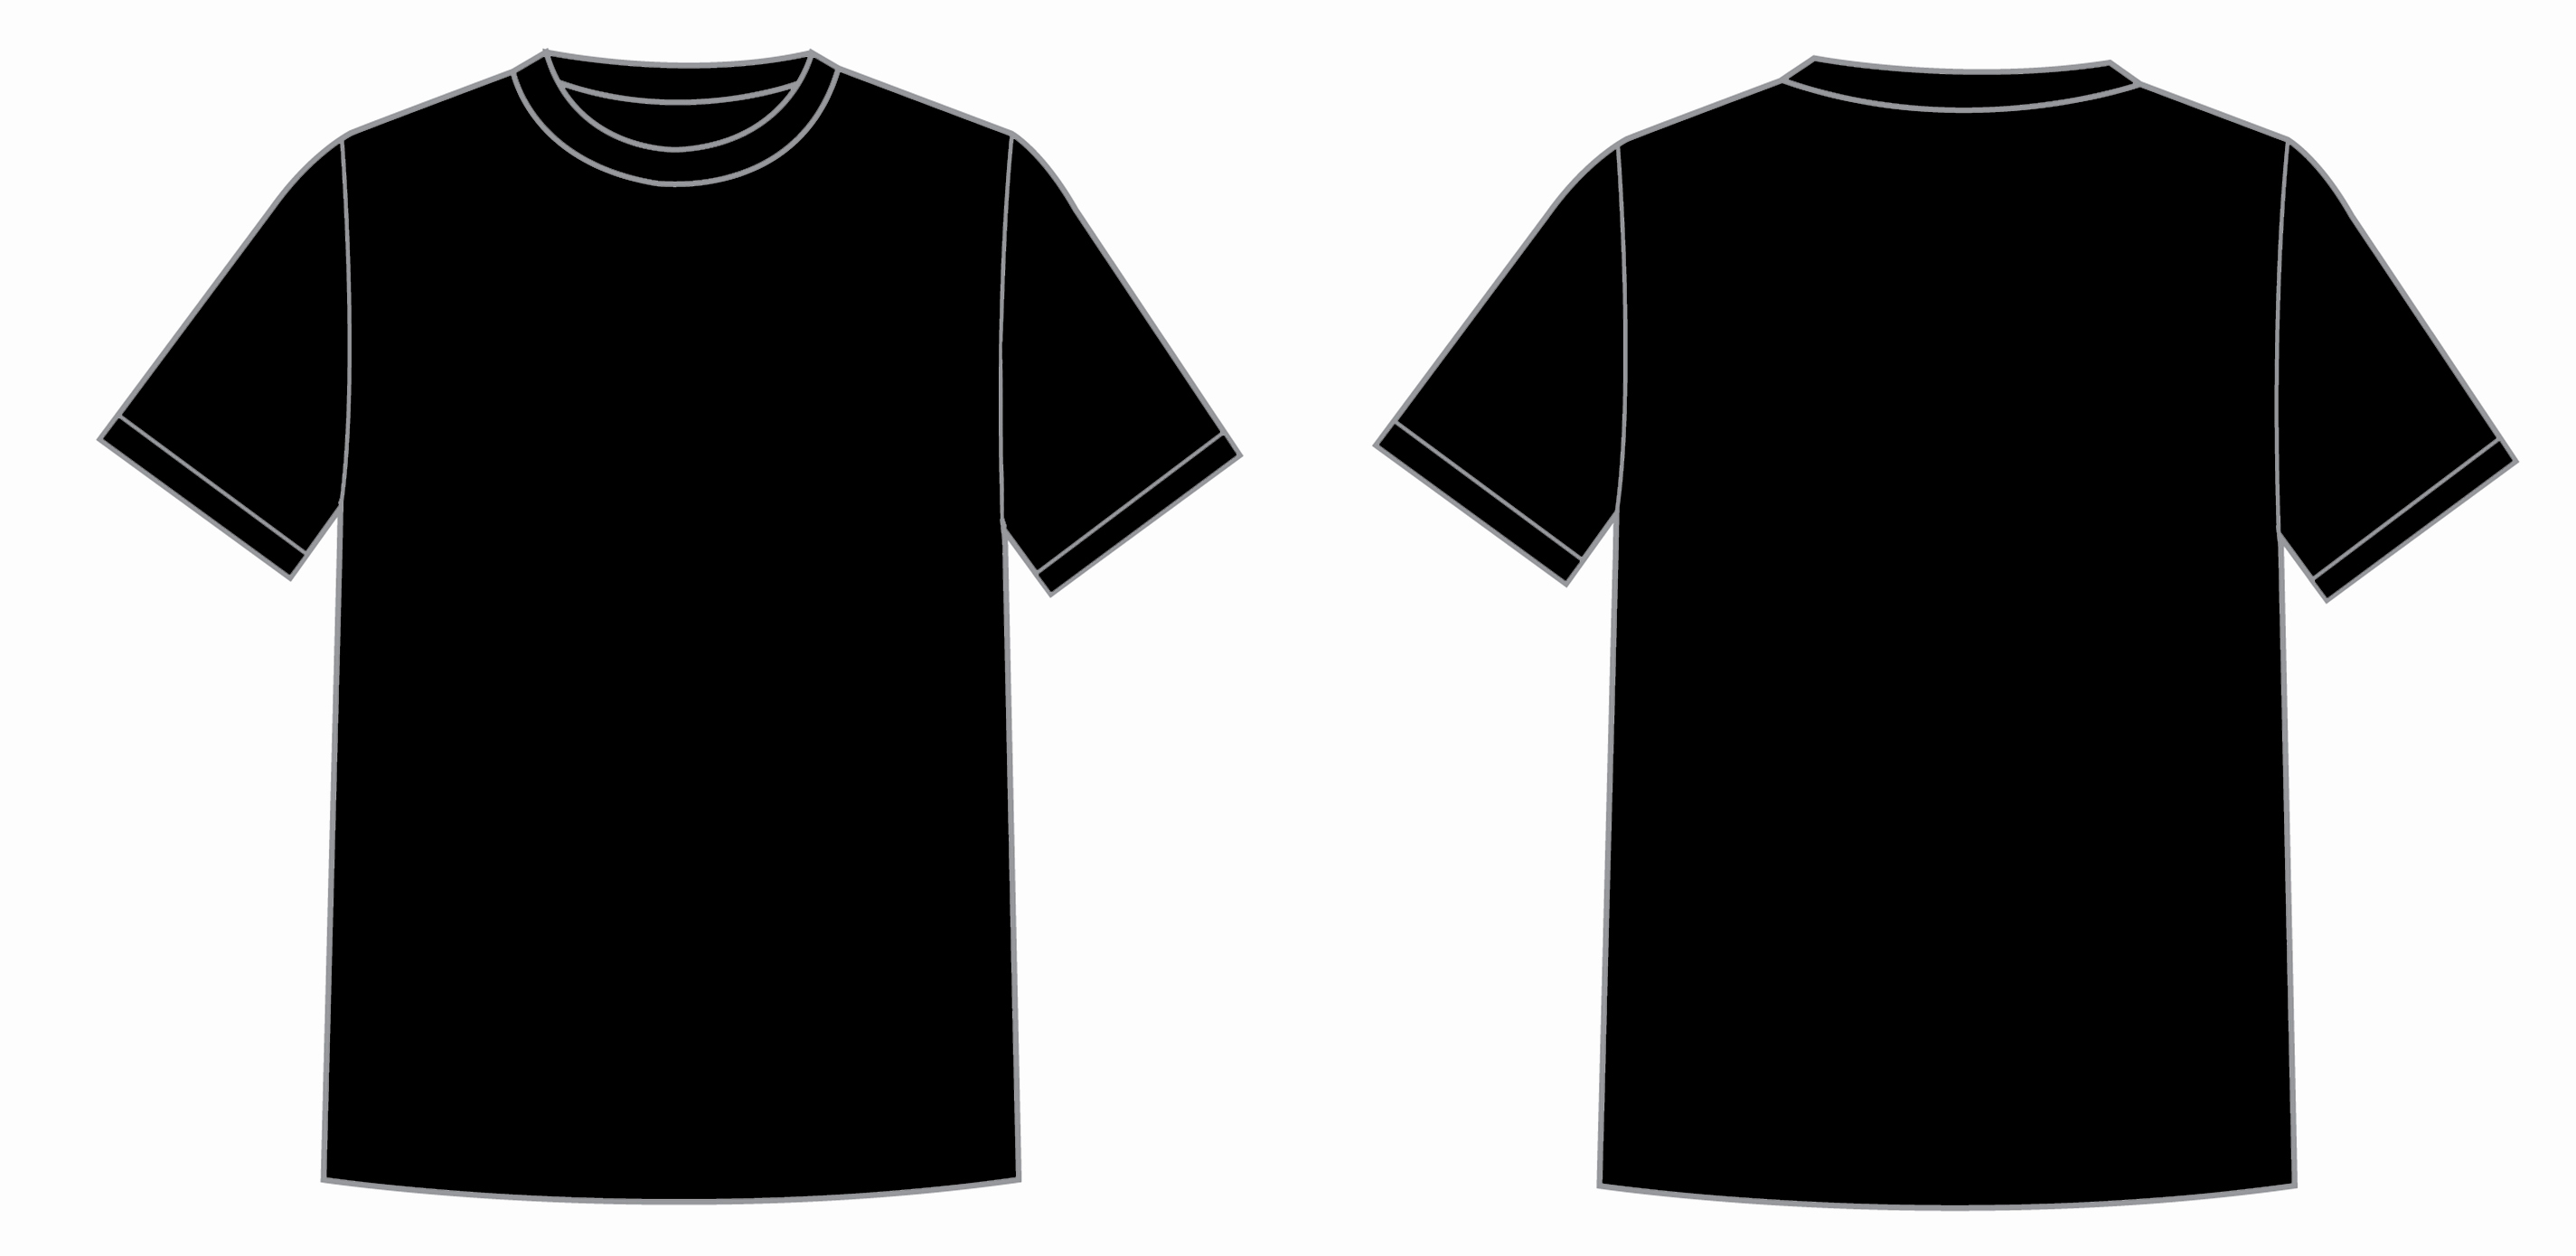 Free T Shirt Template New Free T Shirt Printing Templates Download Free Clip Art